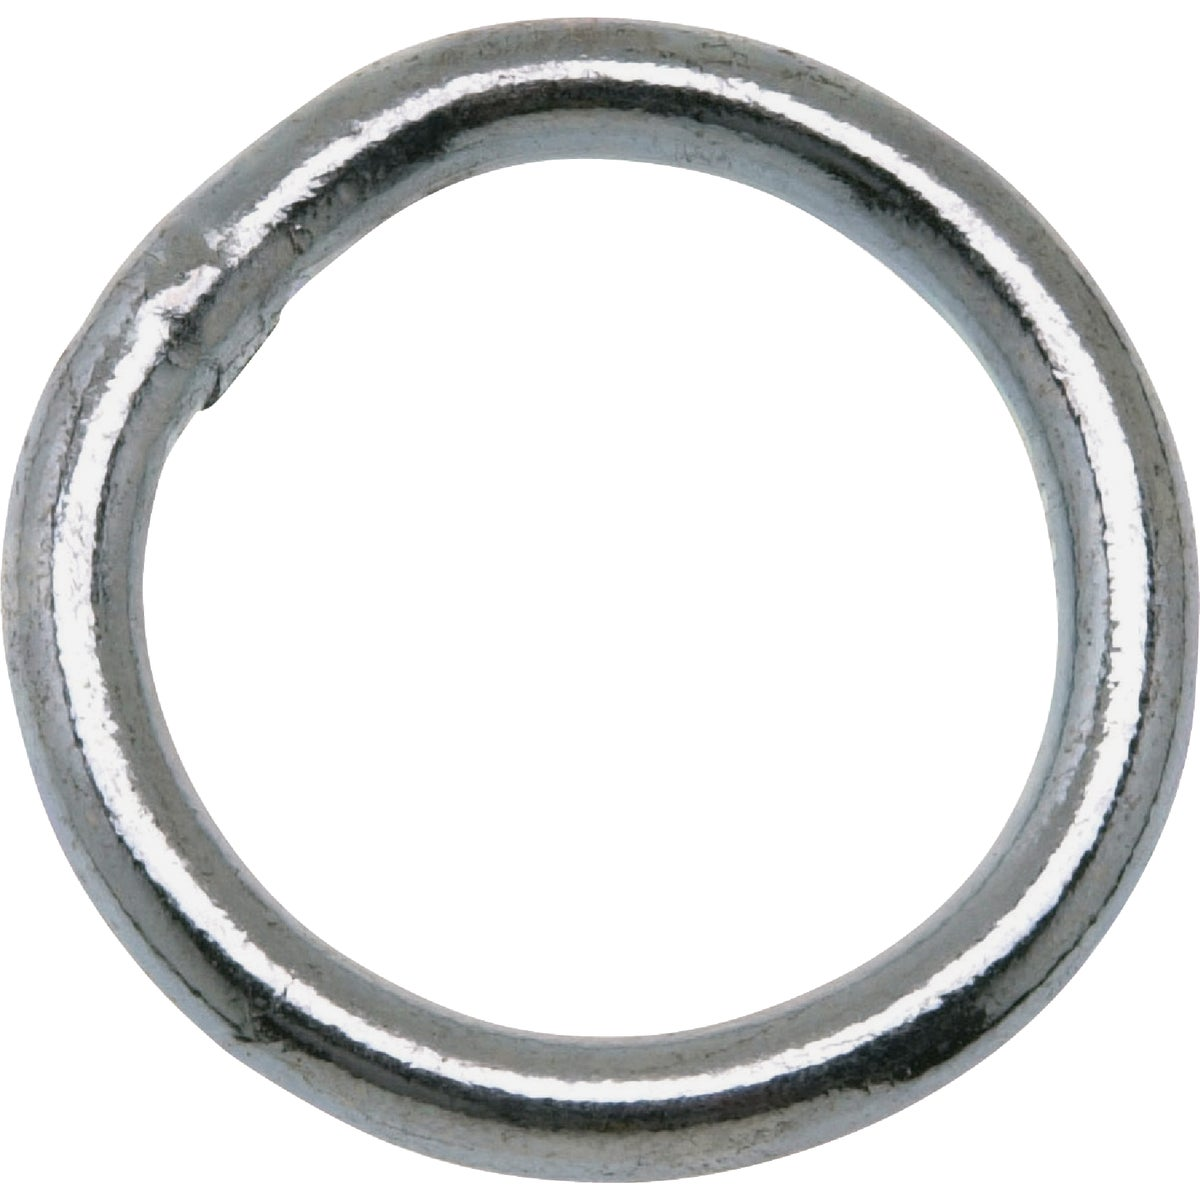 "2-1/2"" #2 ROUND RING - T7661361 by Cooper Campbell Apex"